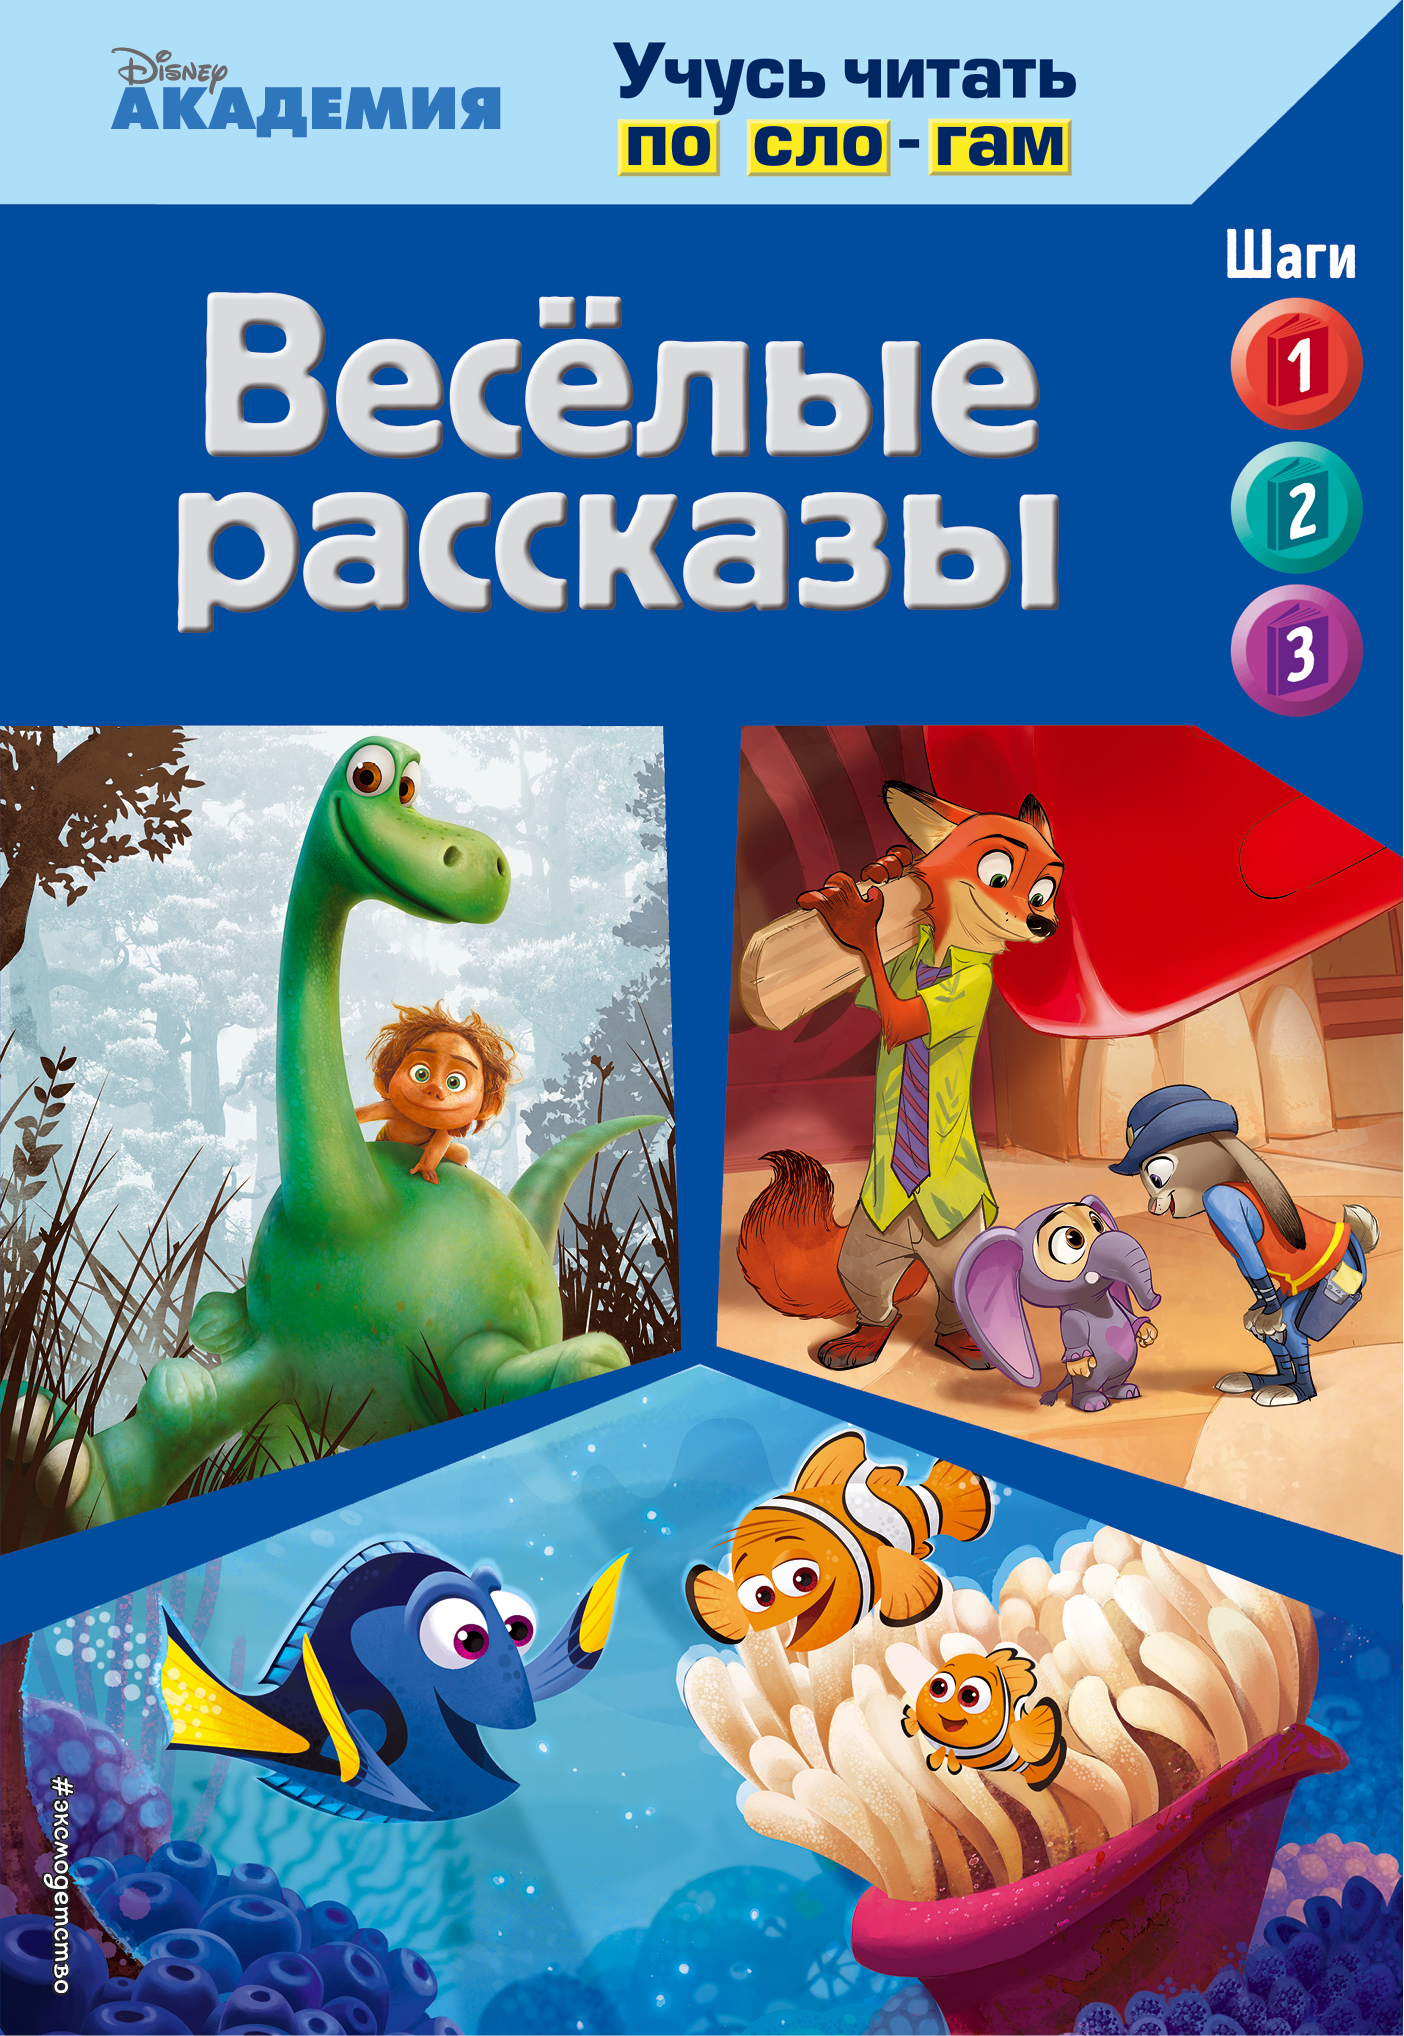 Весёлые рассказы (The Good Dinosaur, Finding Dory, Zootopia) игрушка good dinosaur 62006